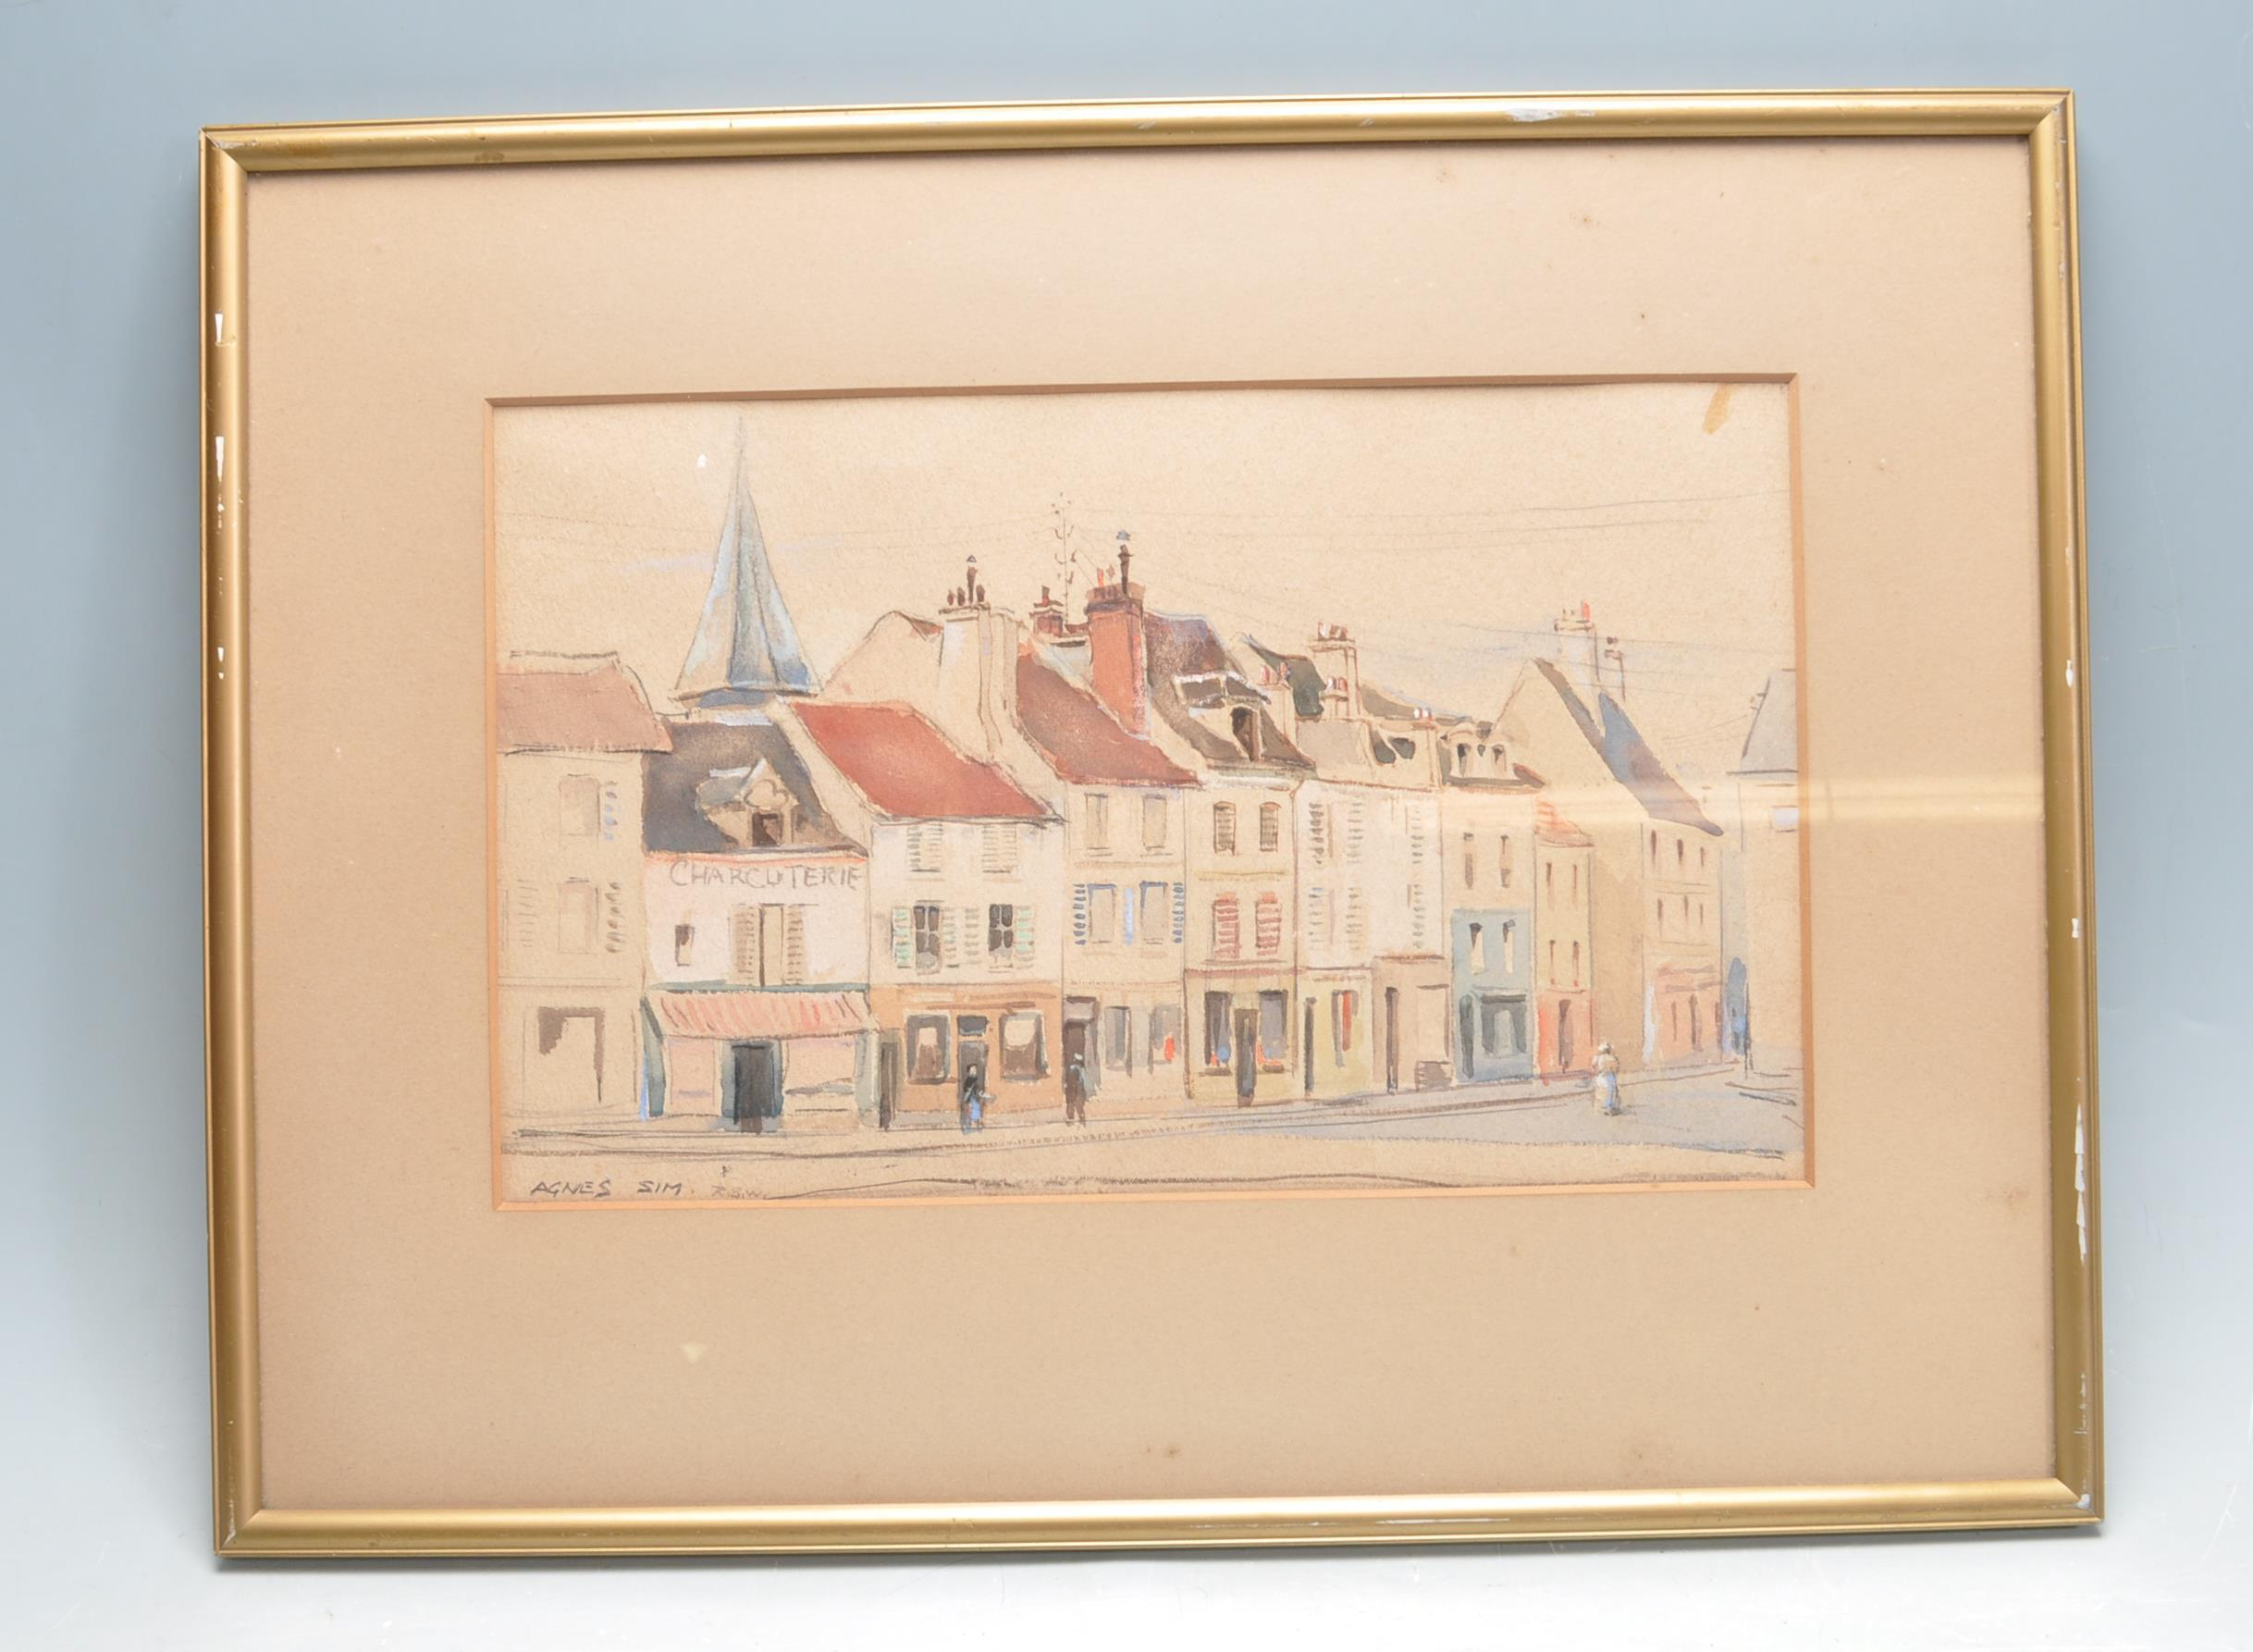 AGNES SIM (1887 - 1978) A 20TH CENTURY WATERCOLOUR DEPICTING A FRENCH STREET SCENE. - Image 2 of 6